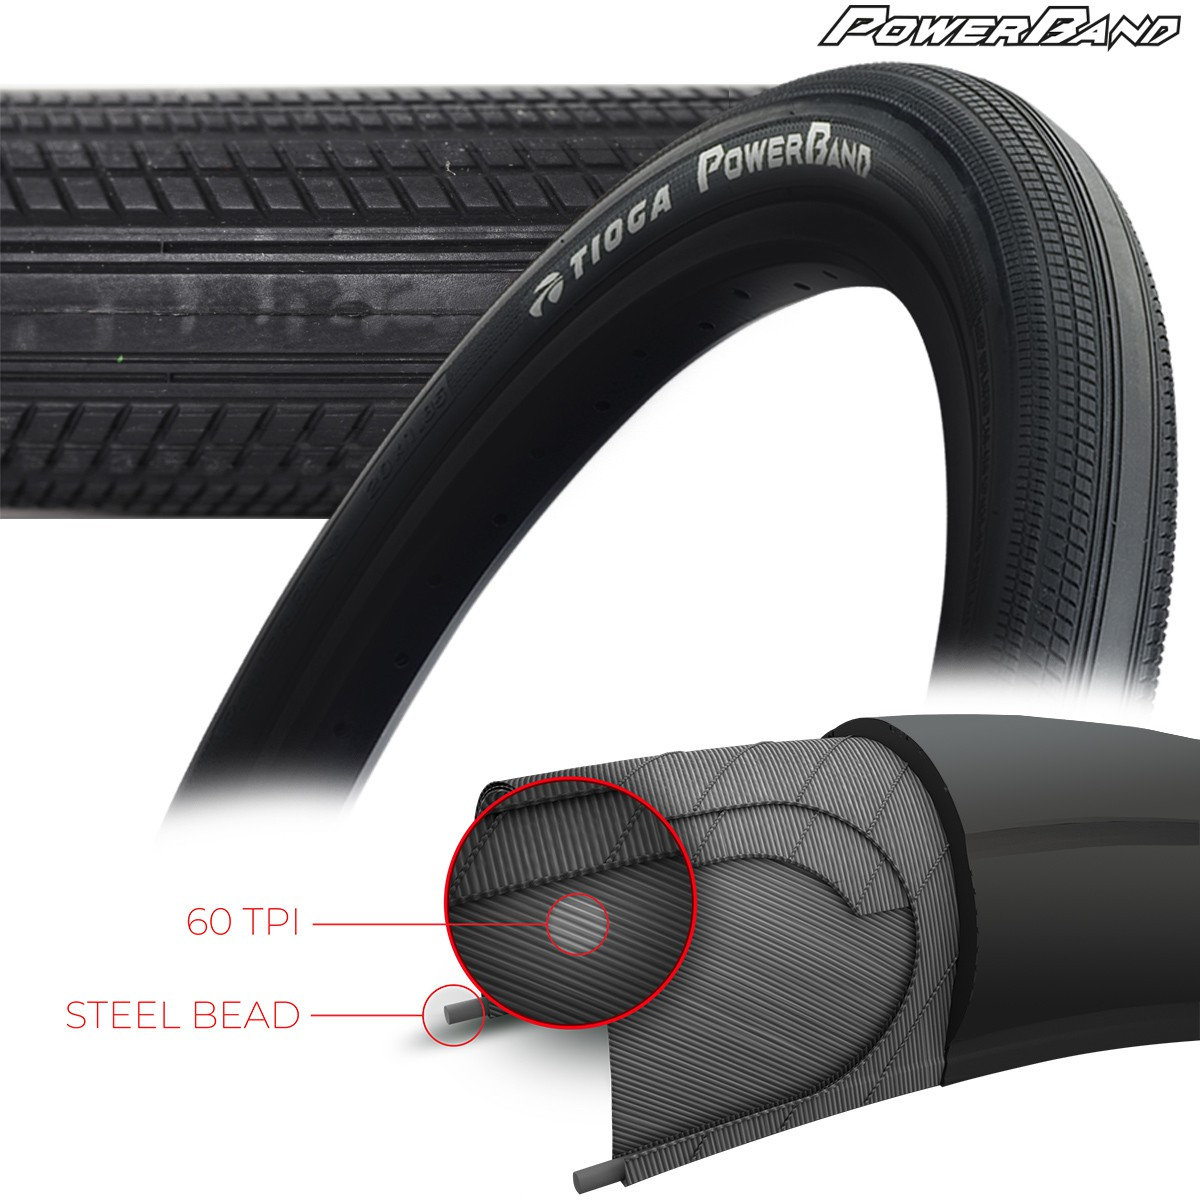 TIOGA POWERBAND TIRES - 60 TPI - WIRE BEAD